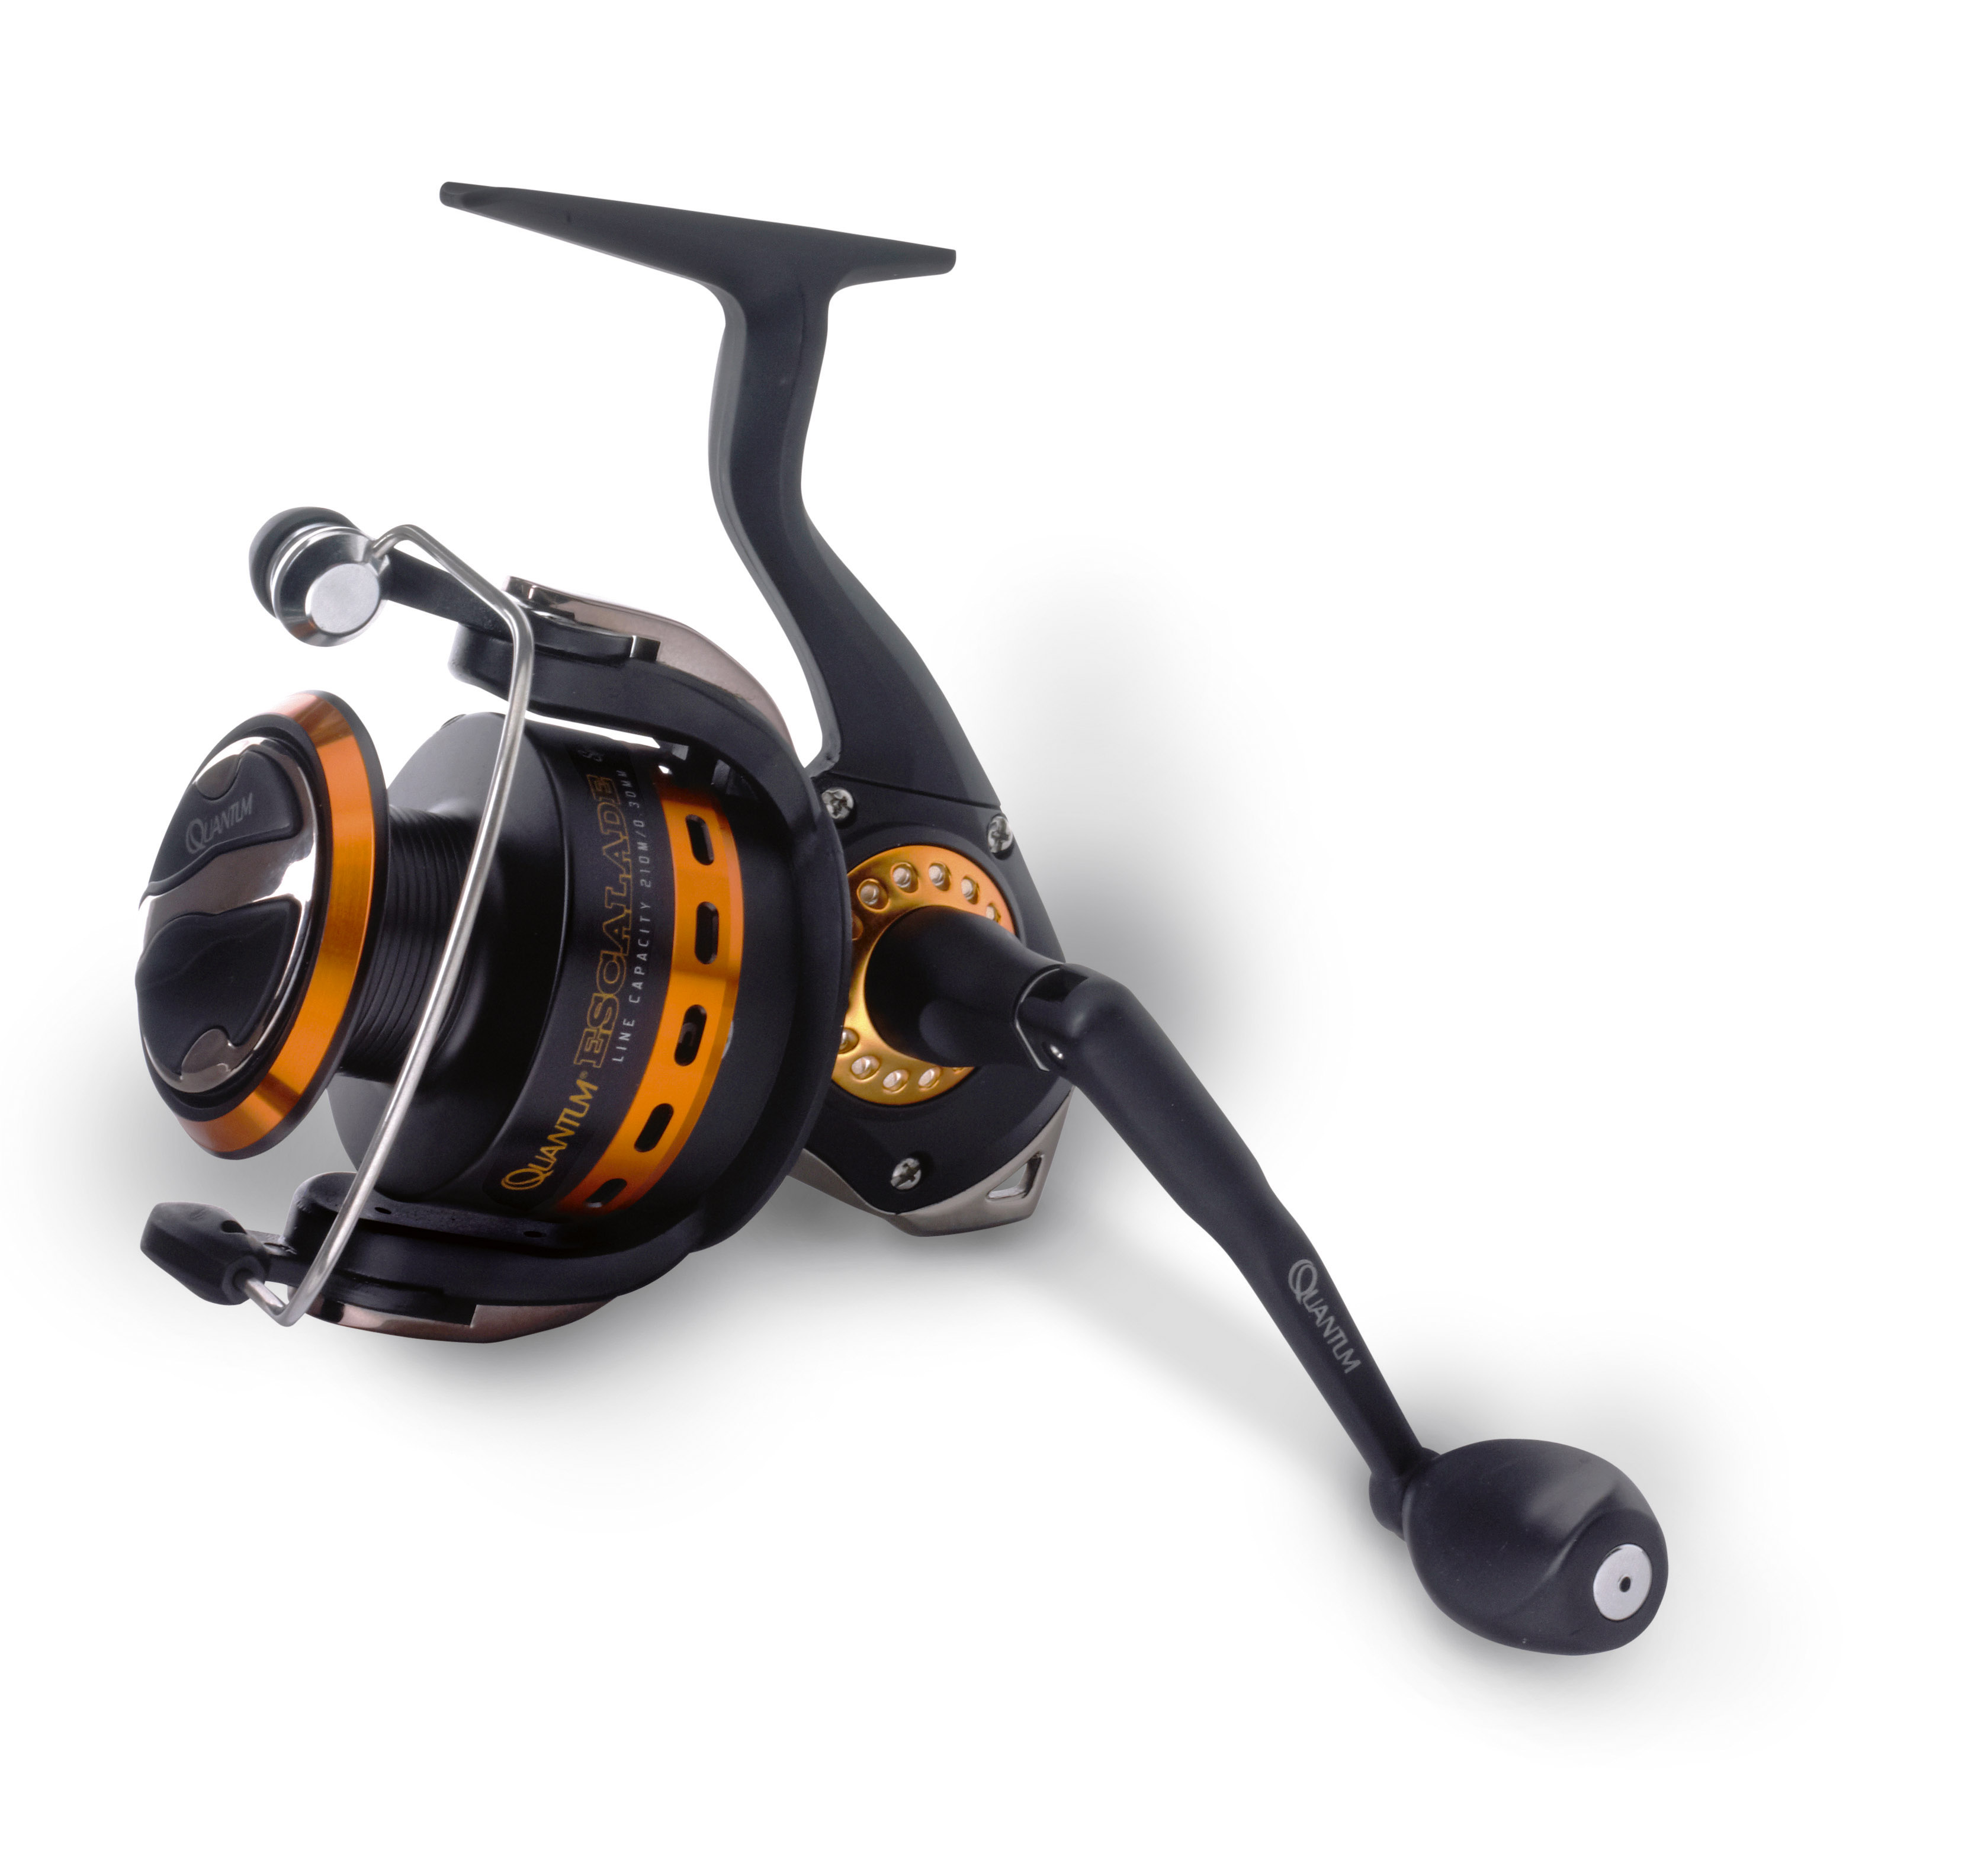 Quantum escalade spin reel 530fd glasgow angling centre for Quantum fishing reel